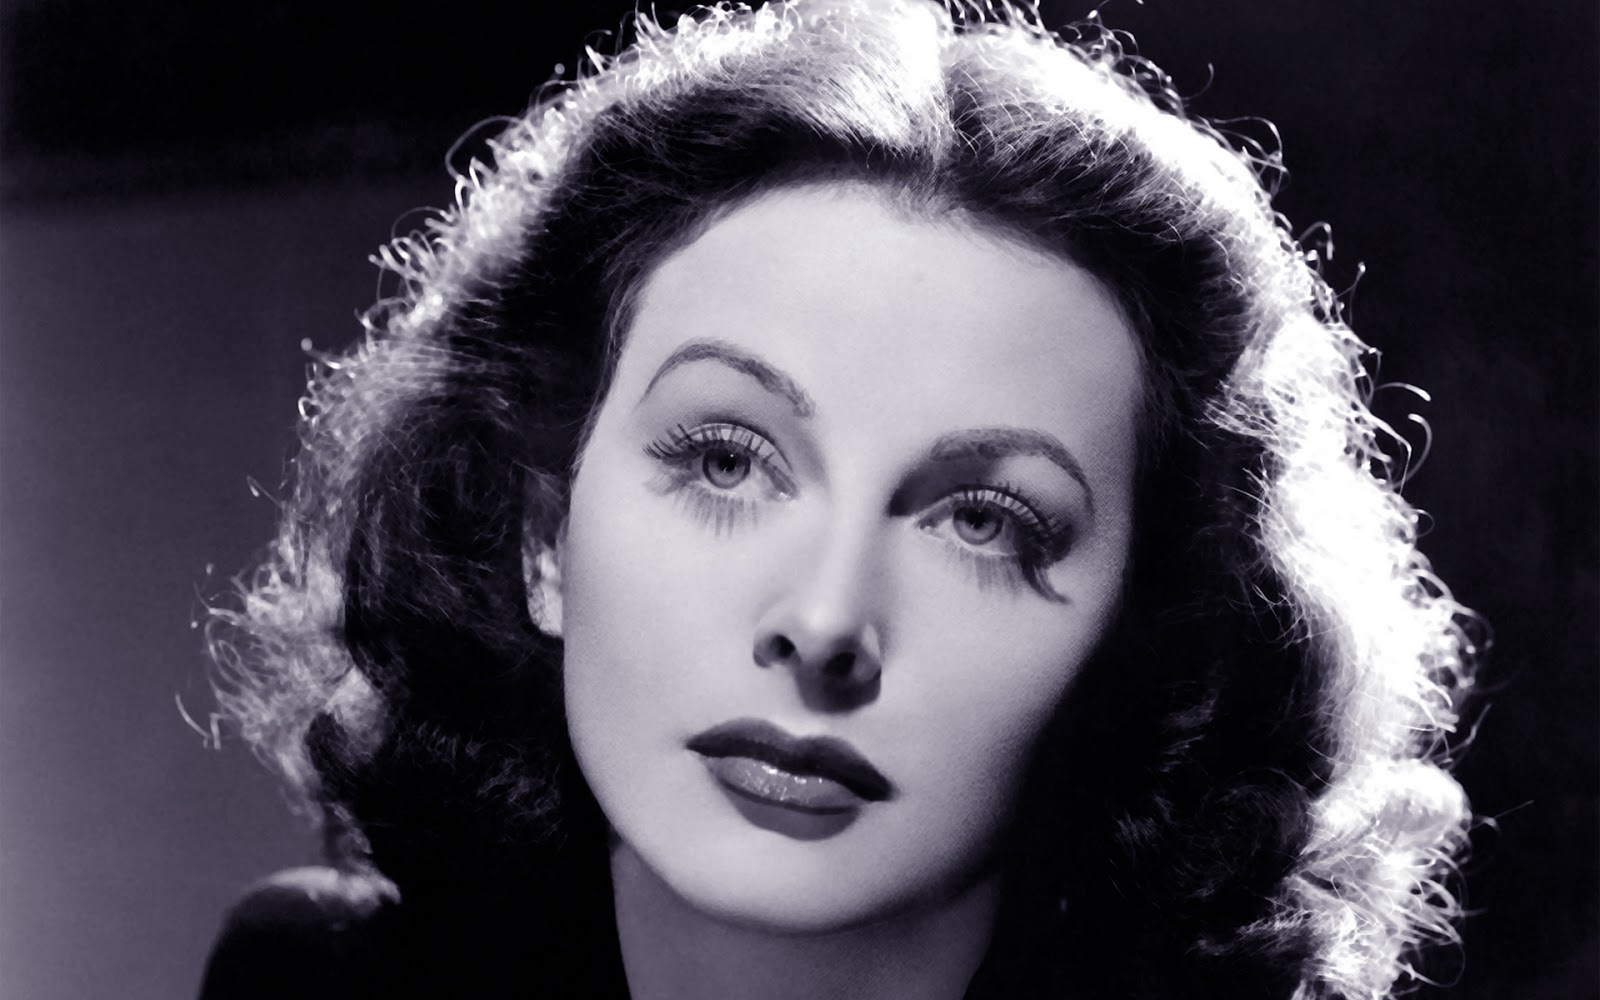 Hedy lamarr the most beautiful woman in film by ron briley